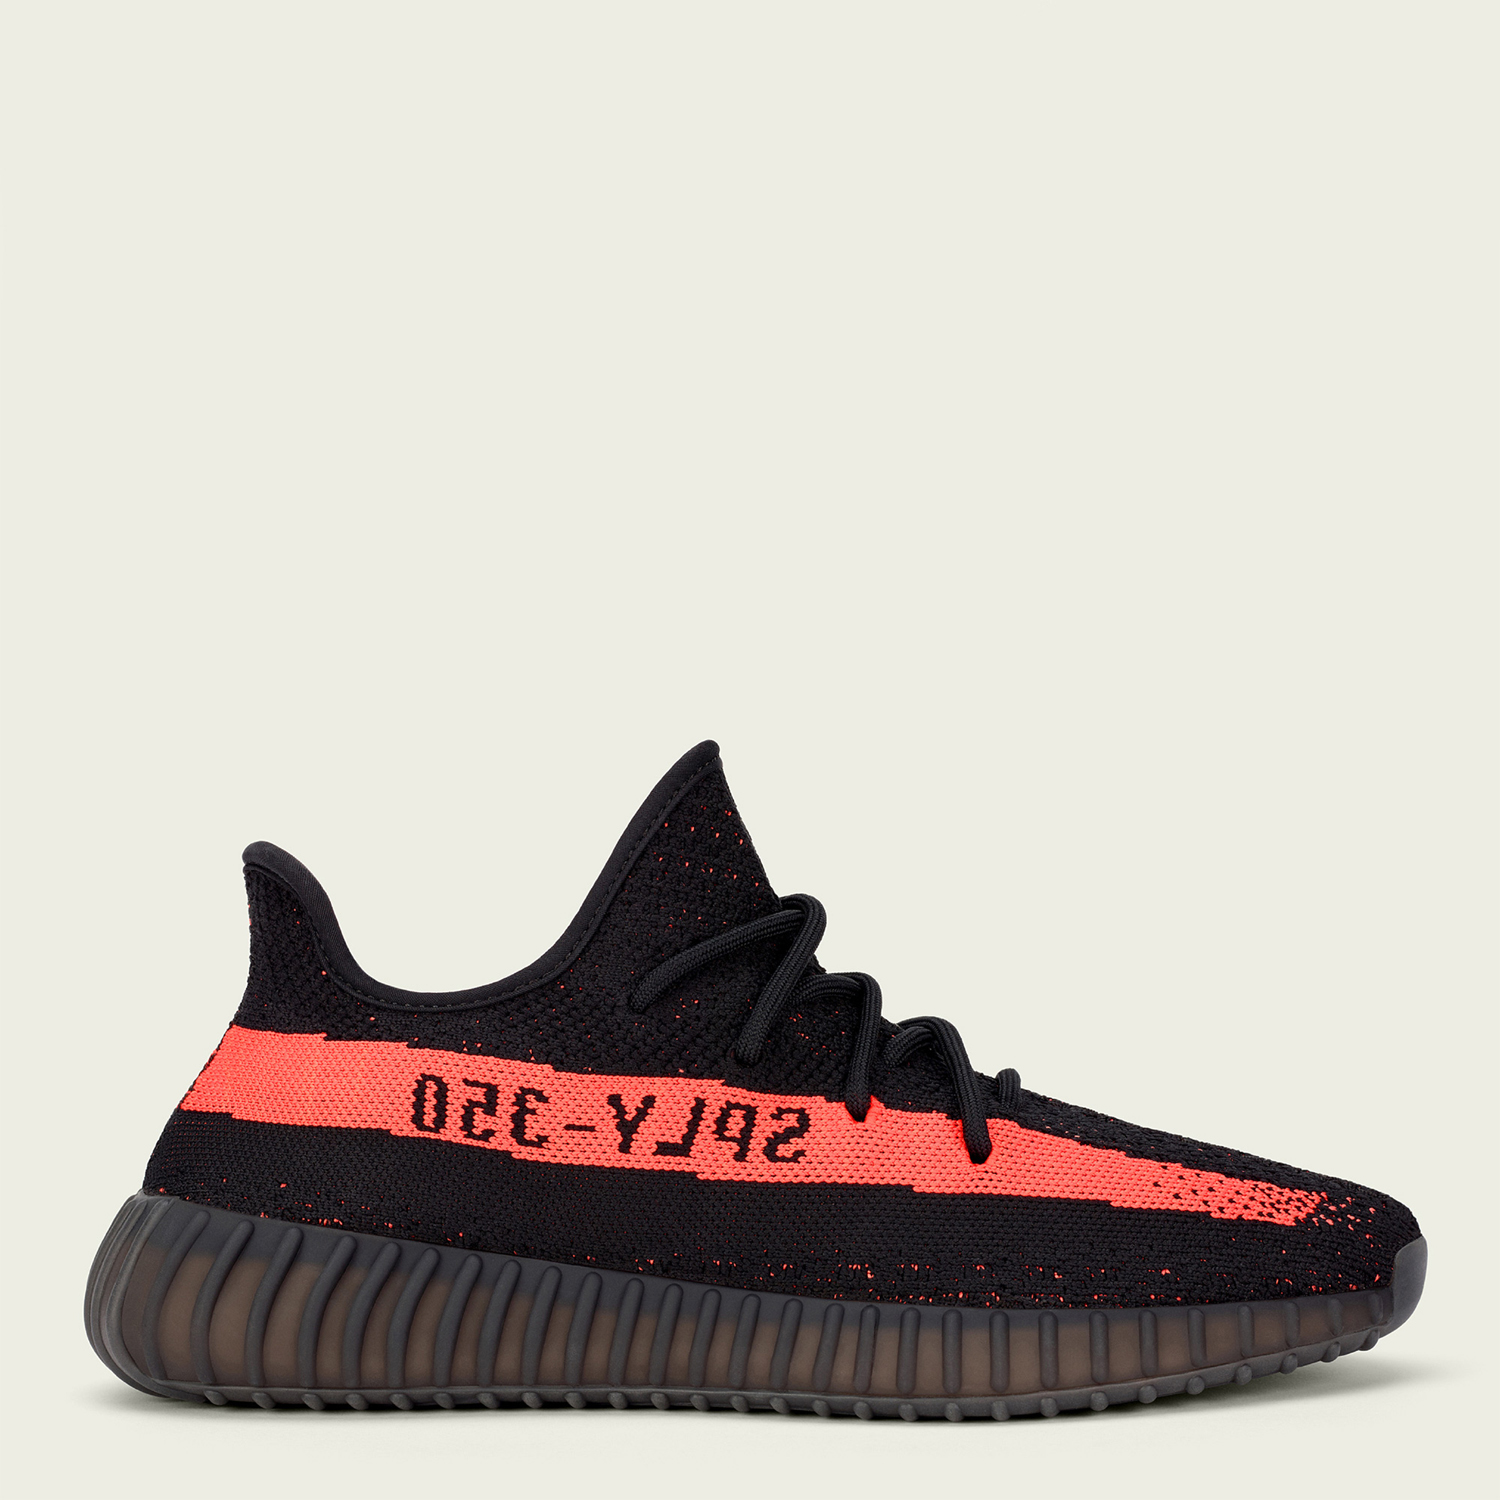 Yeezy Boost 350 V2 Core Black Red [1]